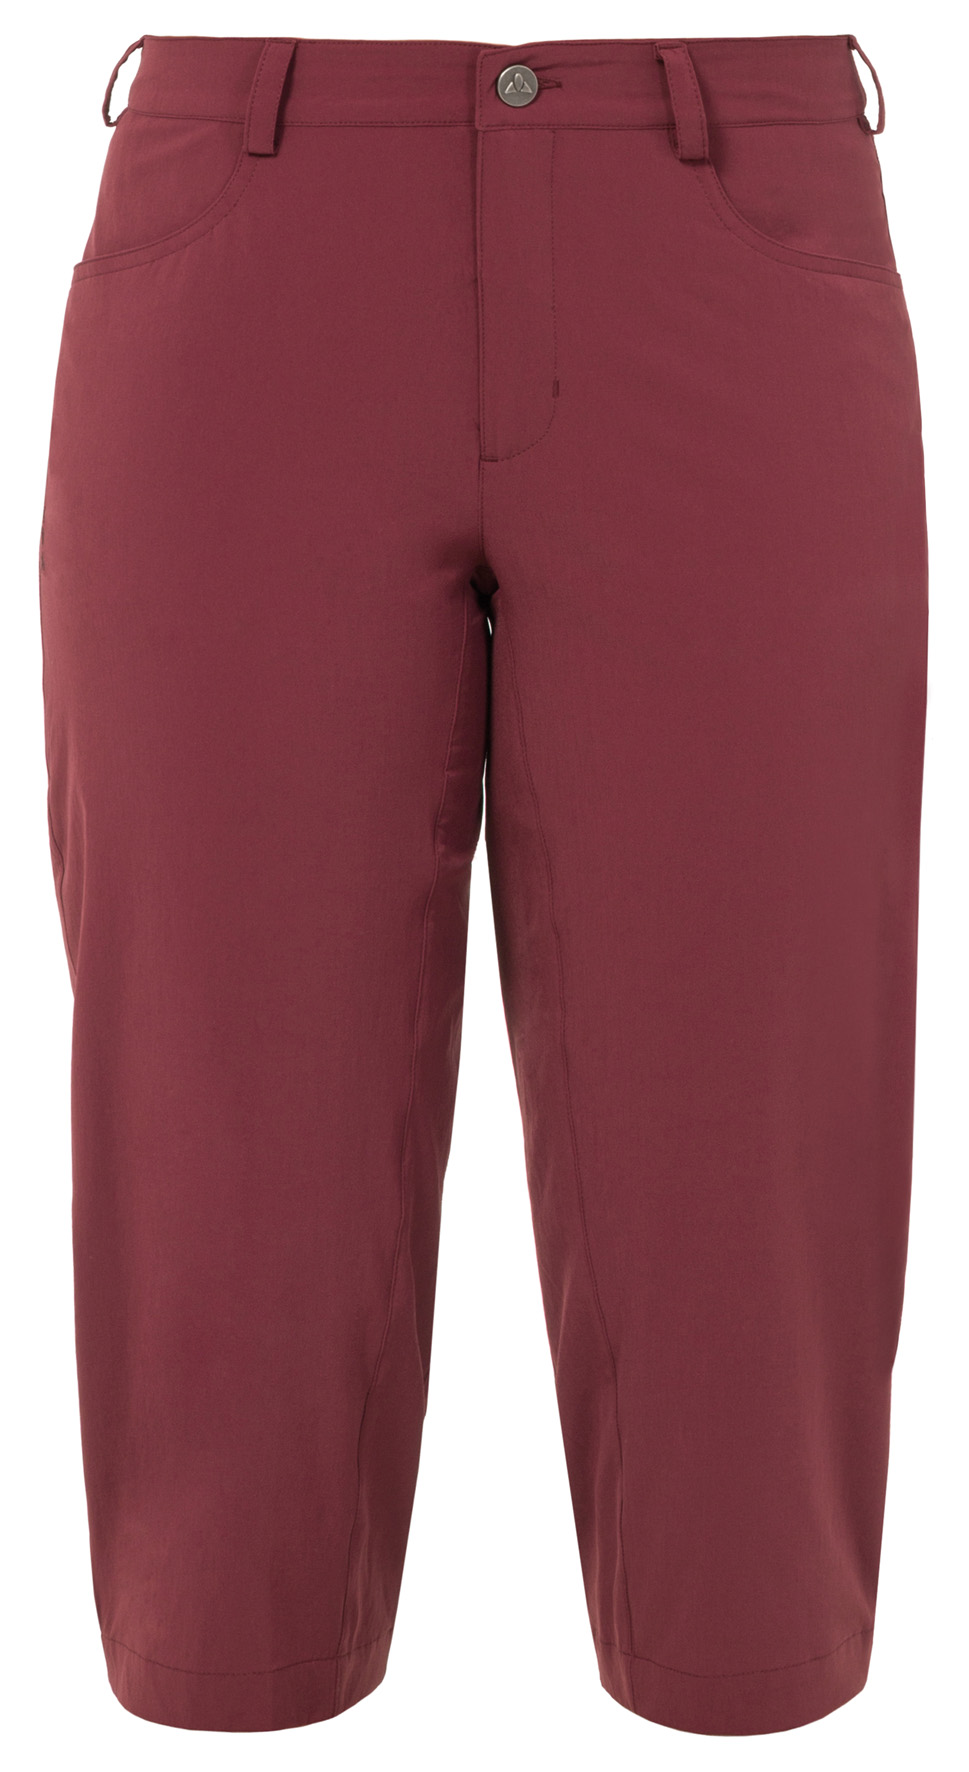 Women´s Yaki 3/4 Pants claret red Größe 46 - schneider-sports